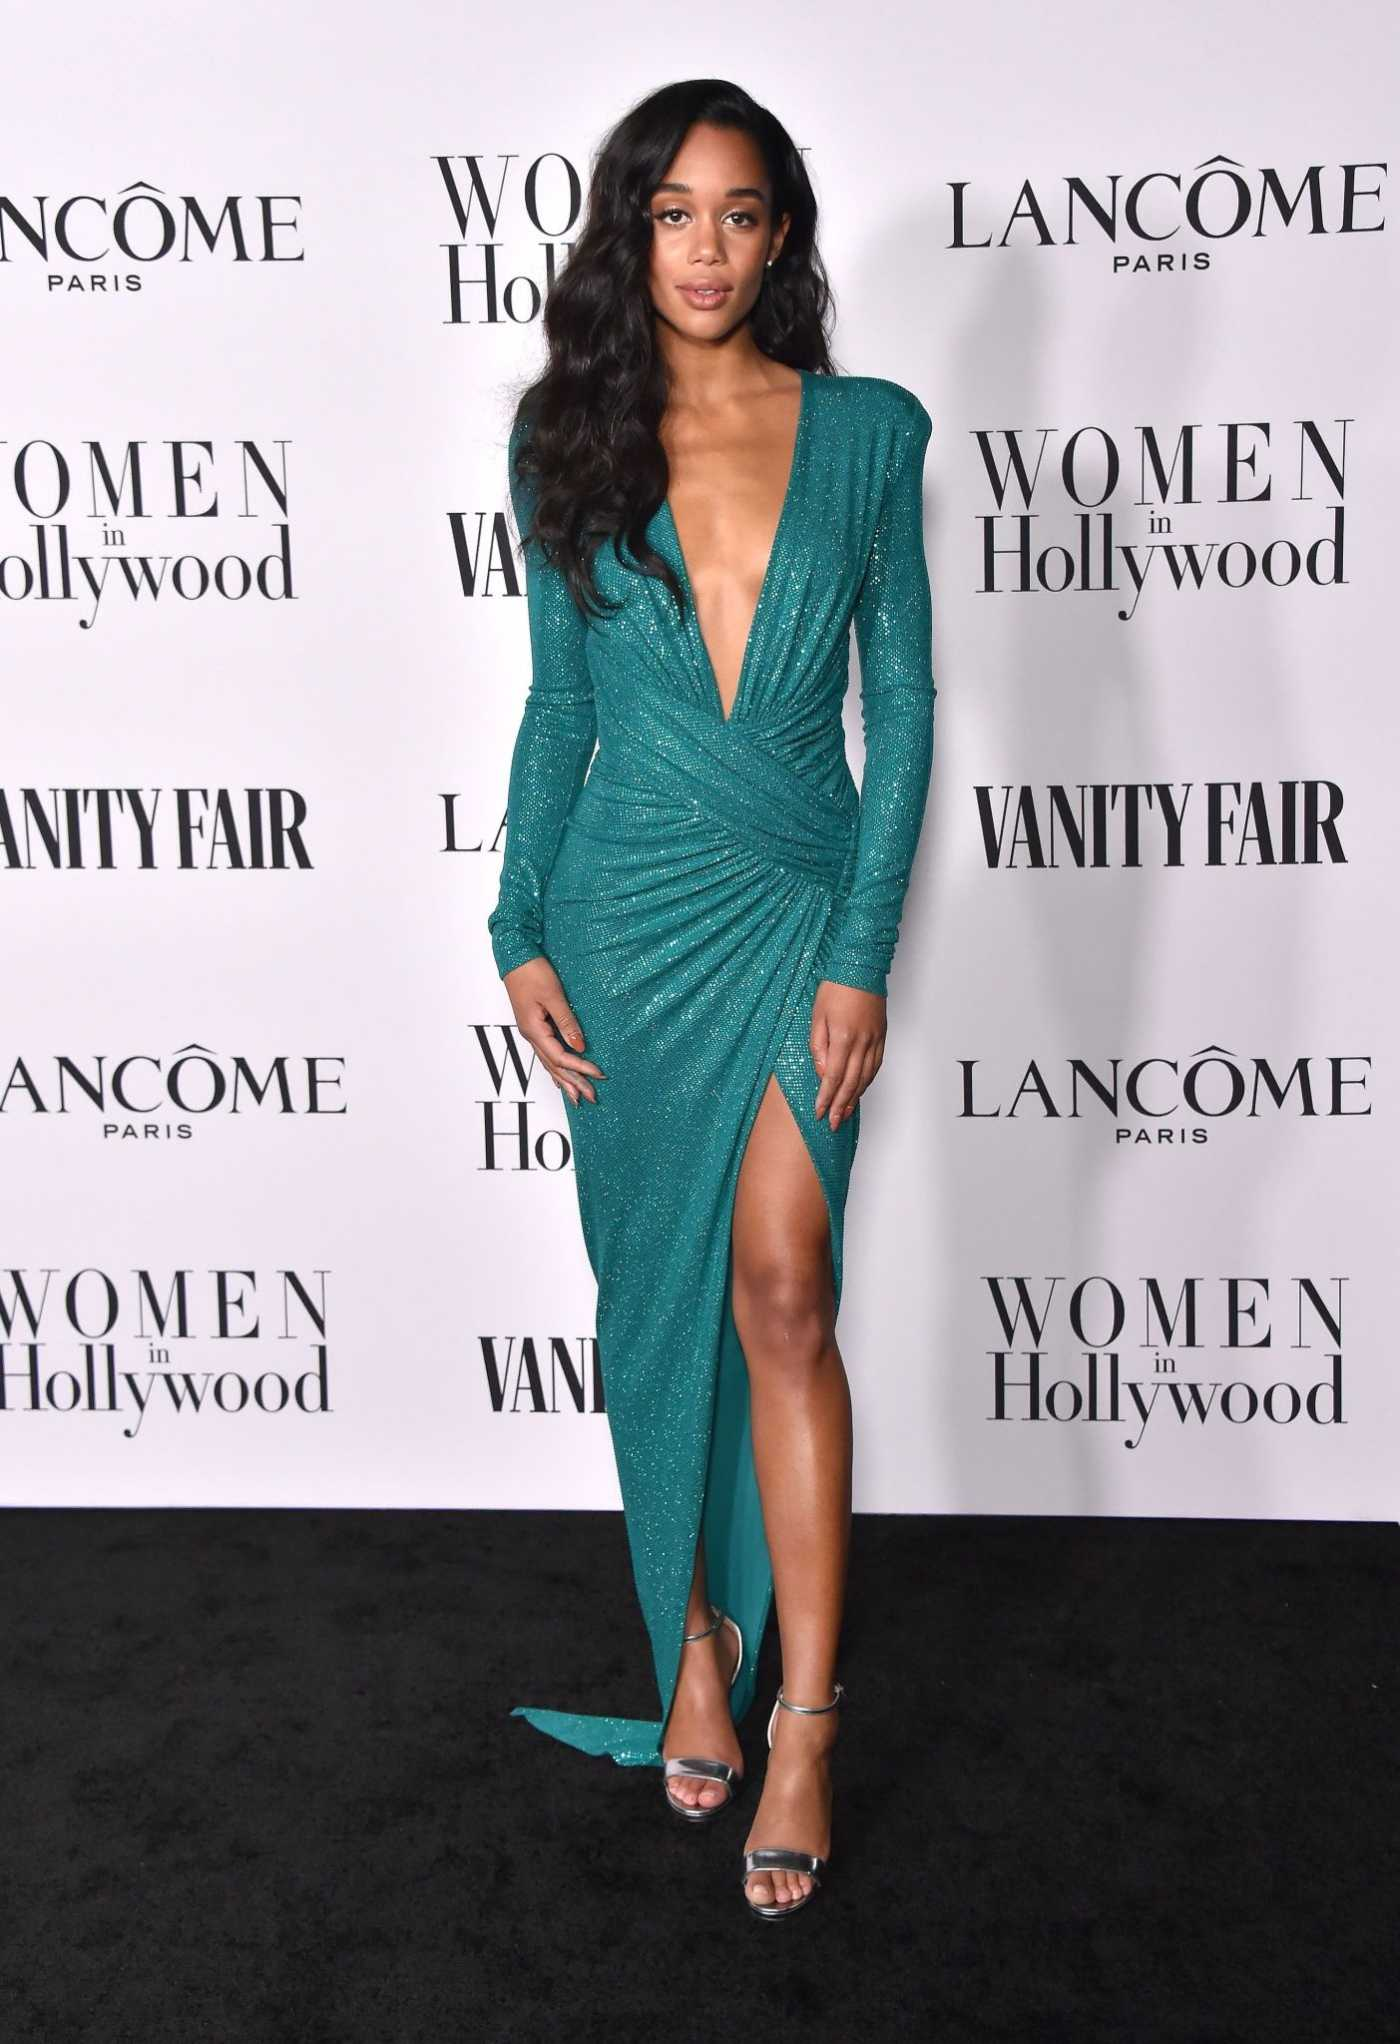 Laura Harrier Attends the Vanity Fair and Lancome Women in Hollywood Celebration at SoHo House in West Hollywood 02/06/2020